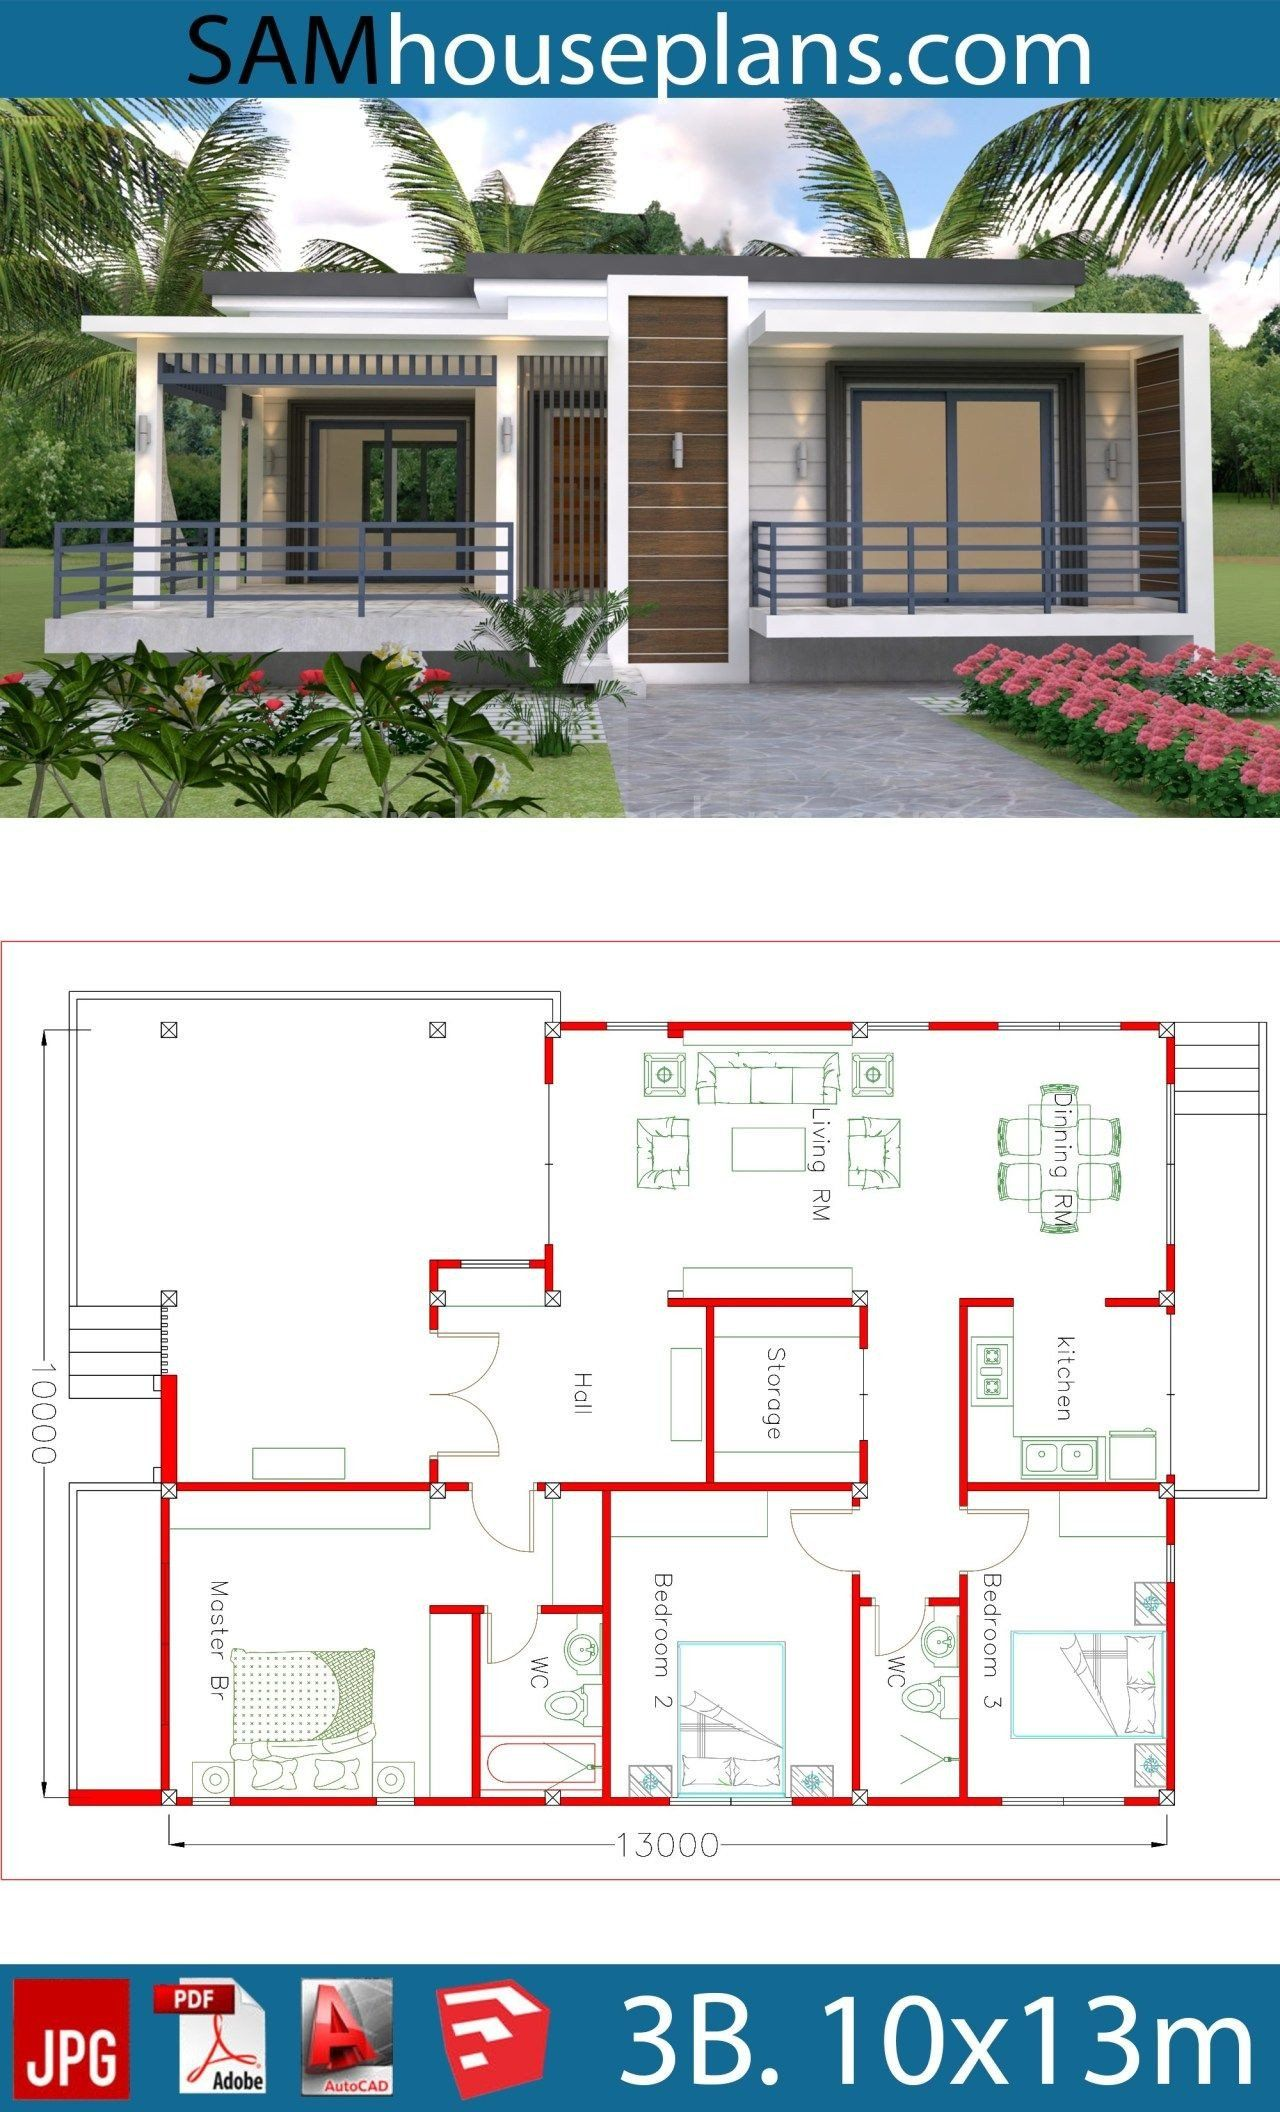 One Story Modern House Designs House Plans 10x13m With 3 Bedrooms Beautiful House Plans Small Modern House Plans My House Plans